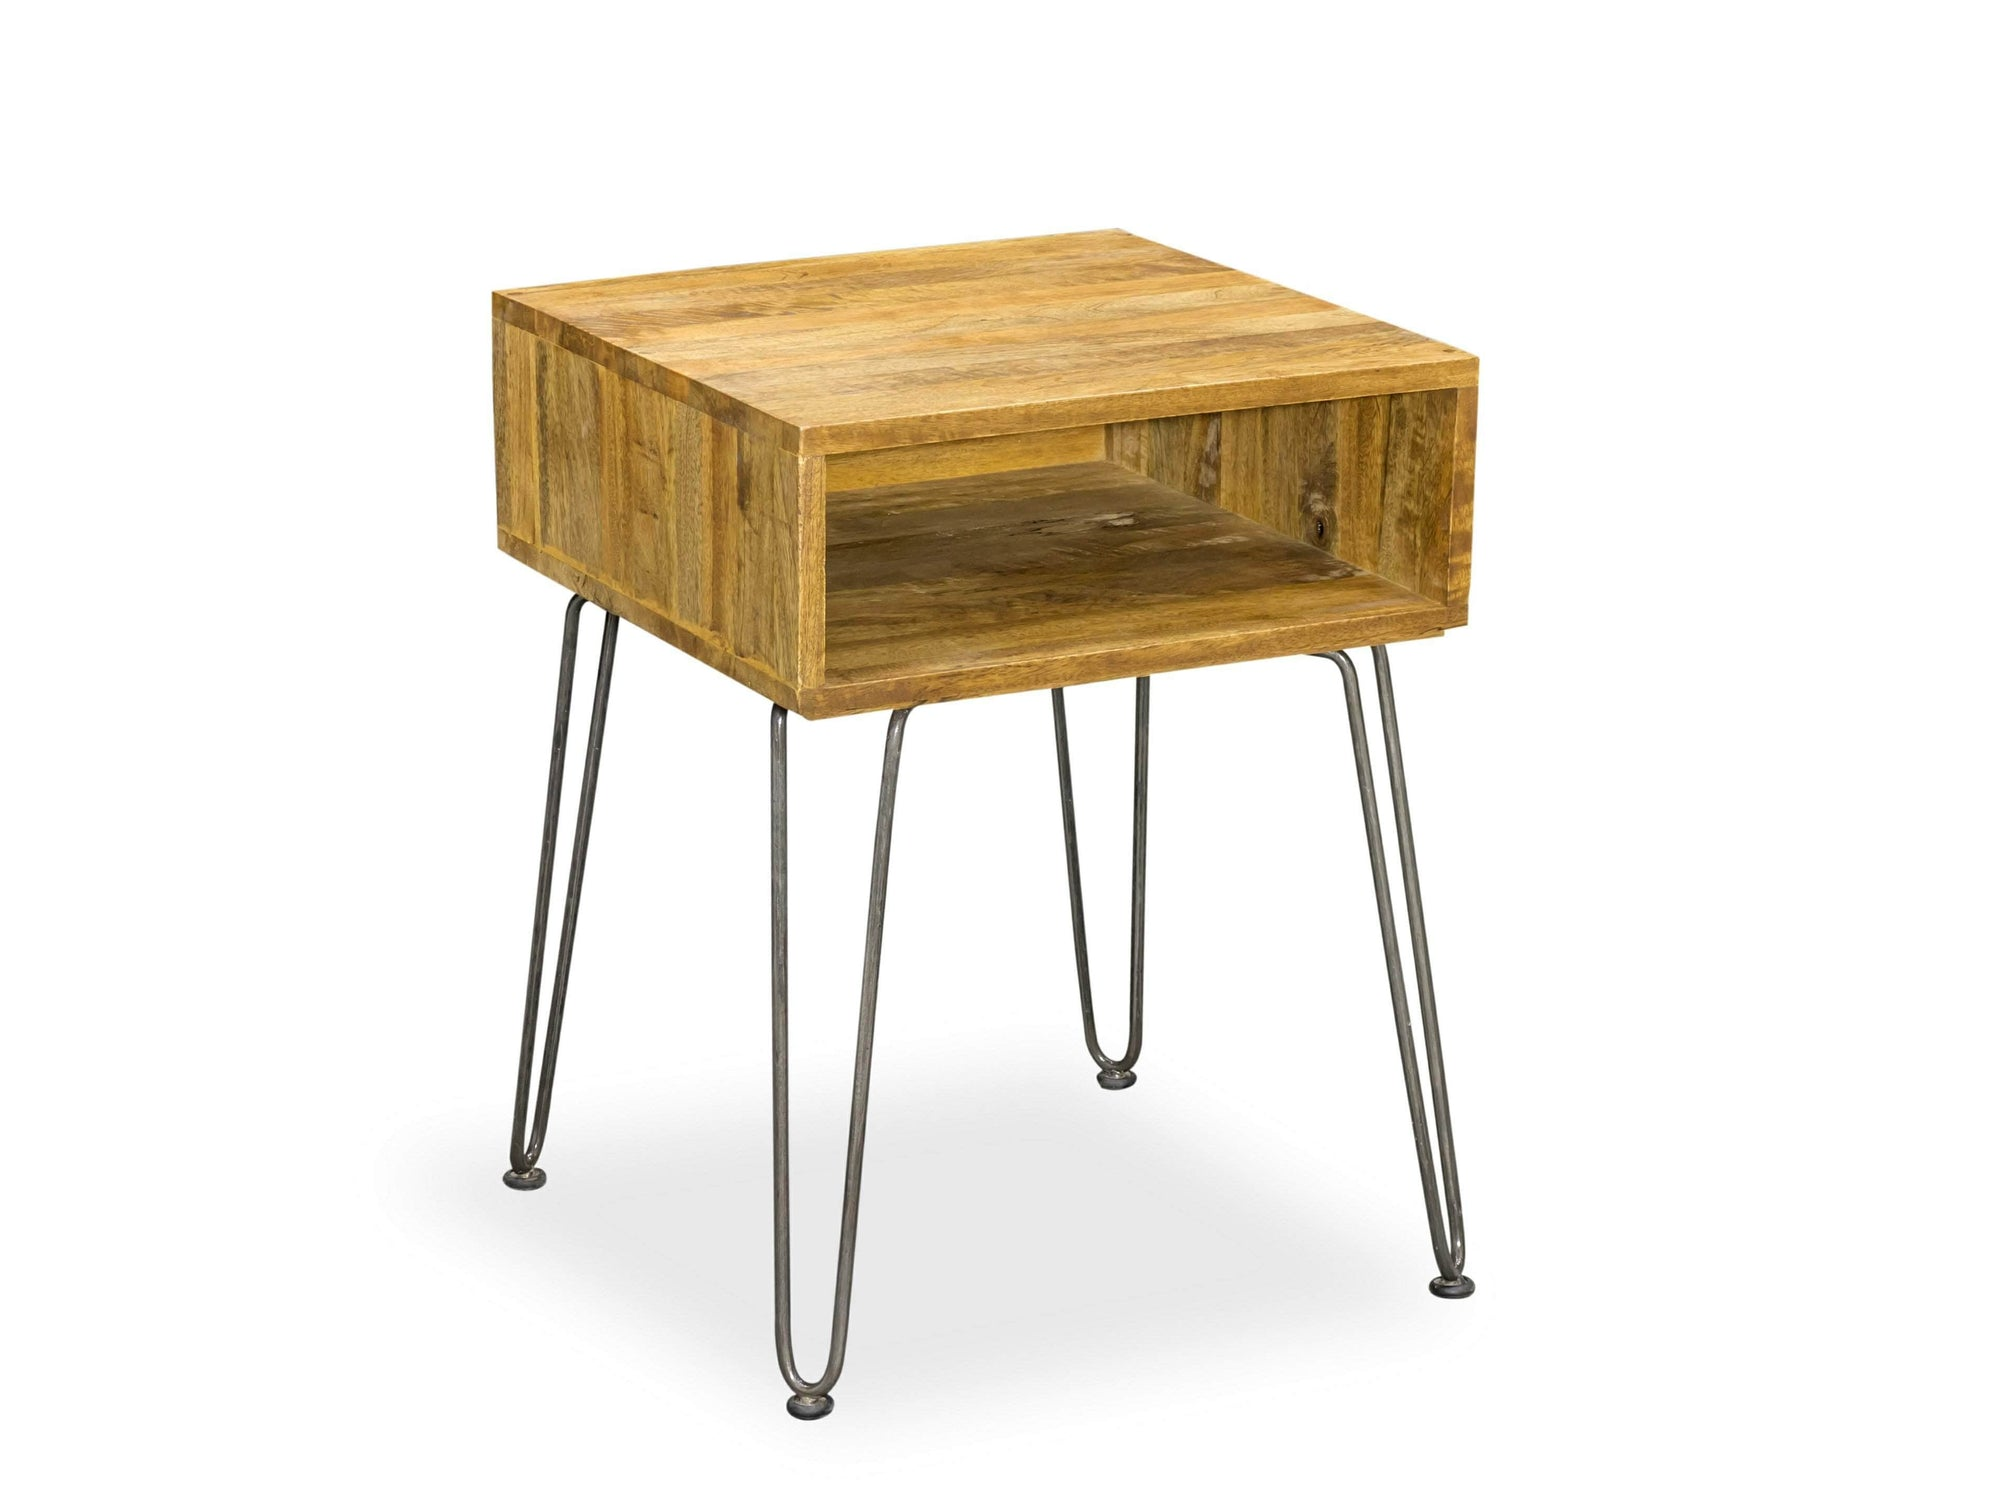 Mango wood side table with steel hairpin legs